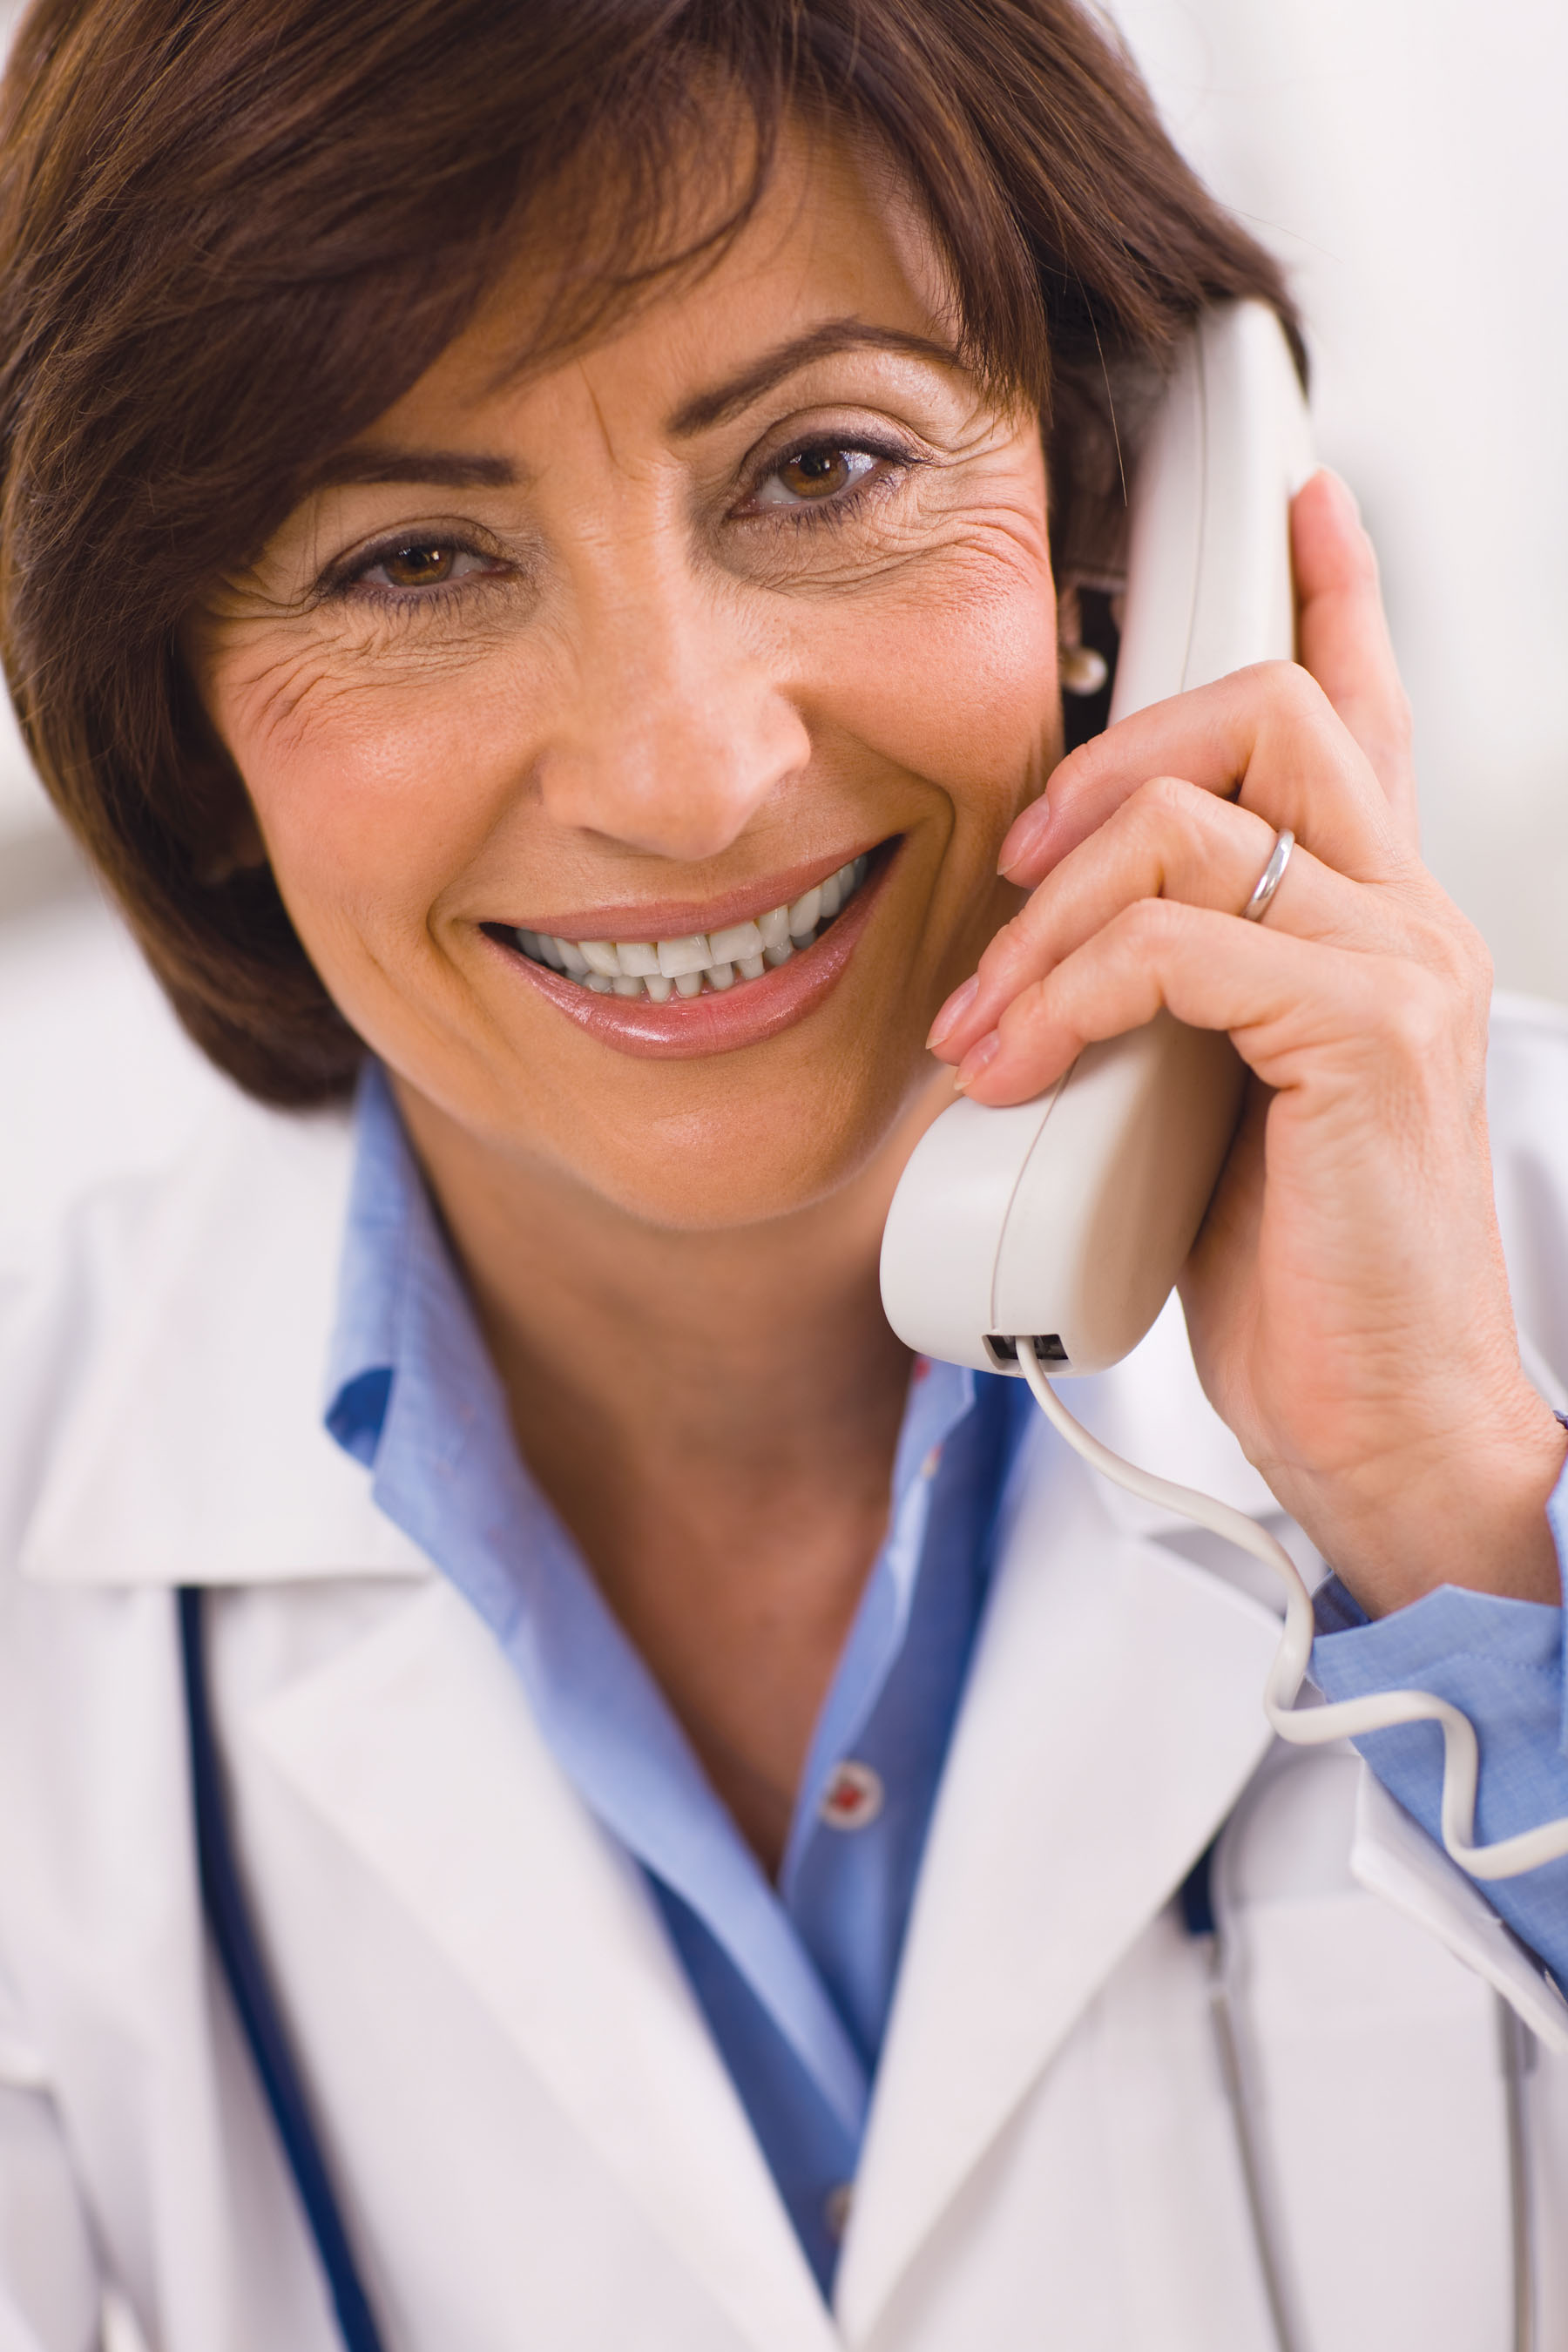 ten tips for handling job interviews by phone american nurse today